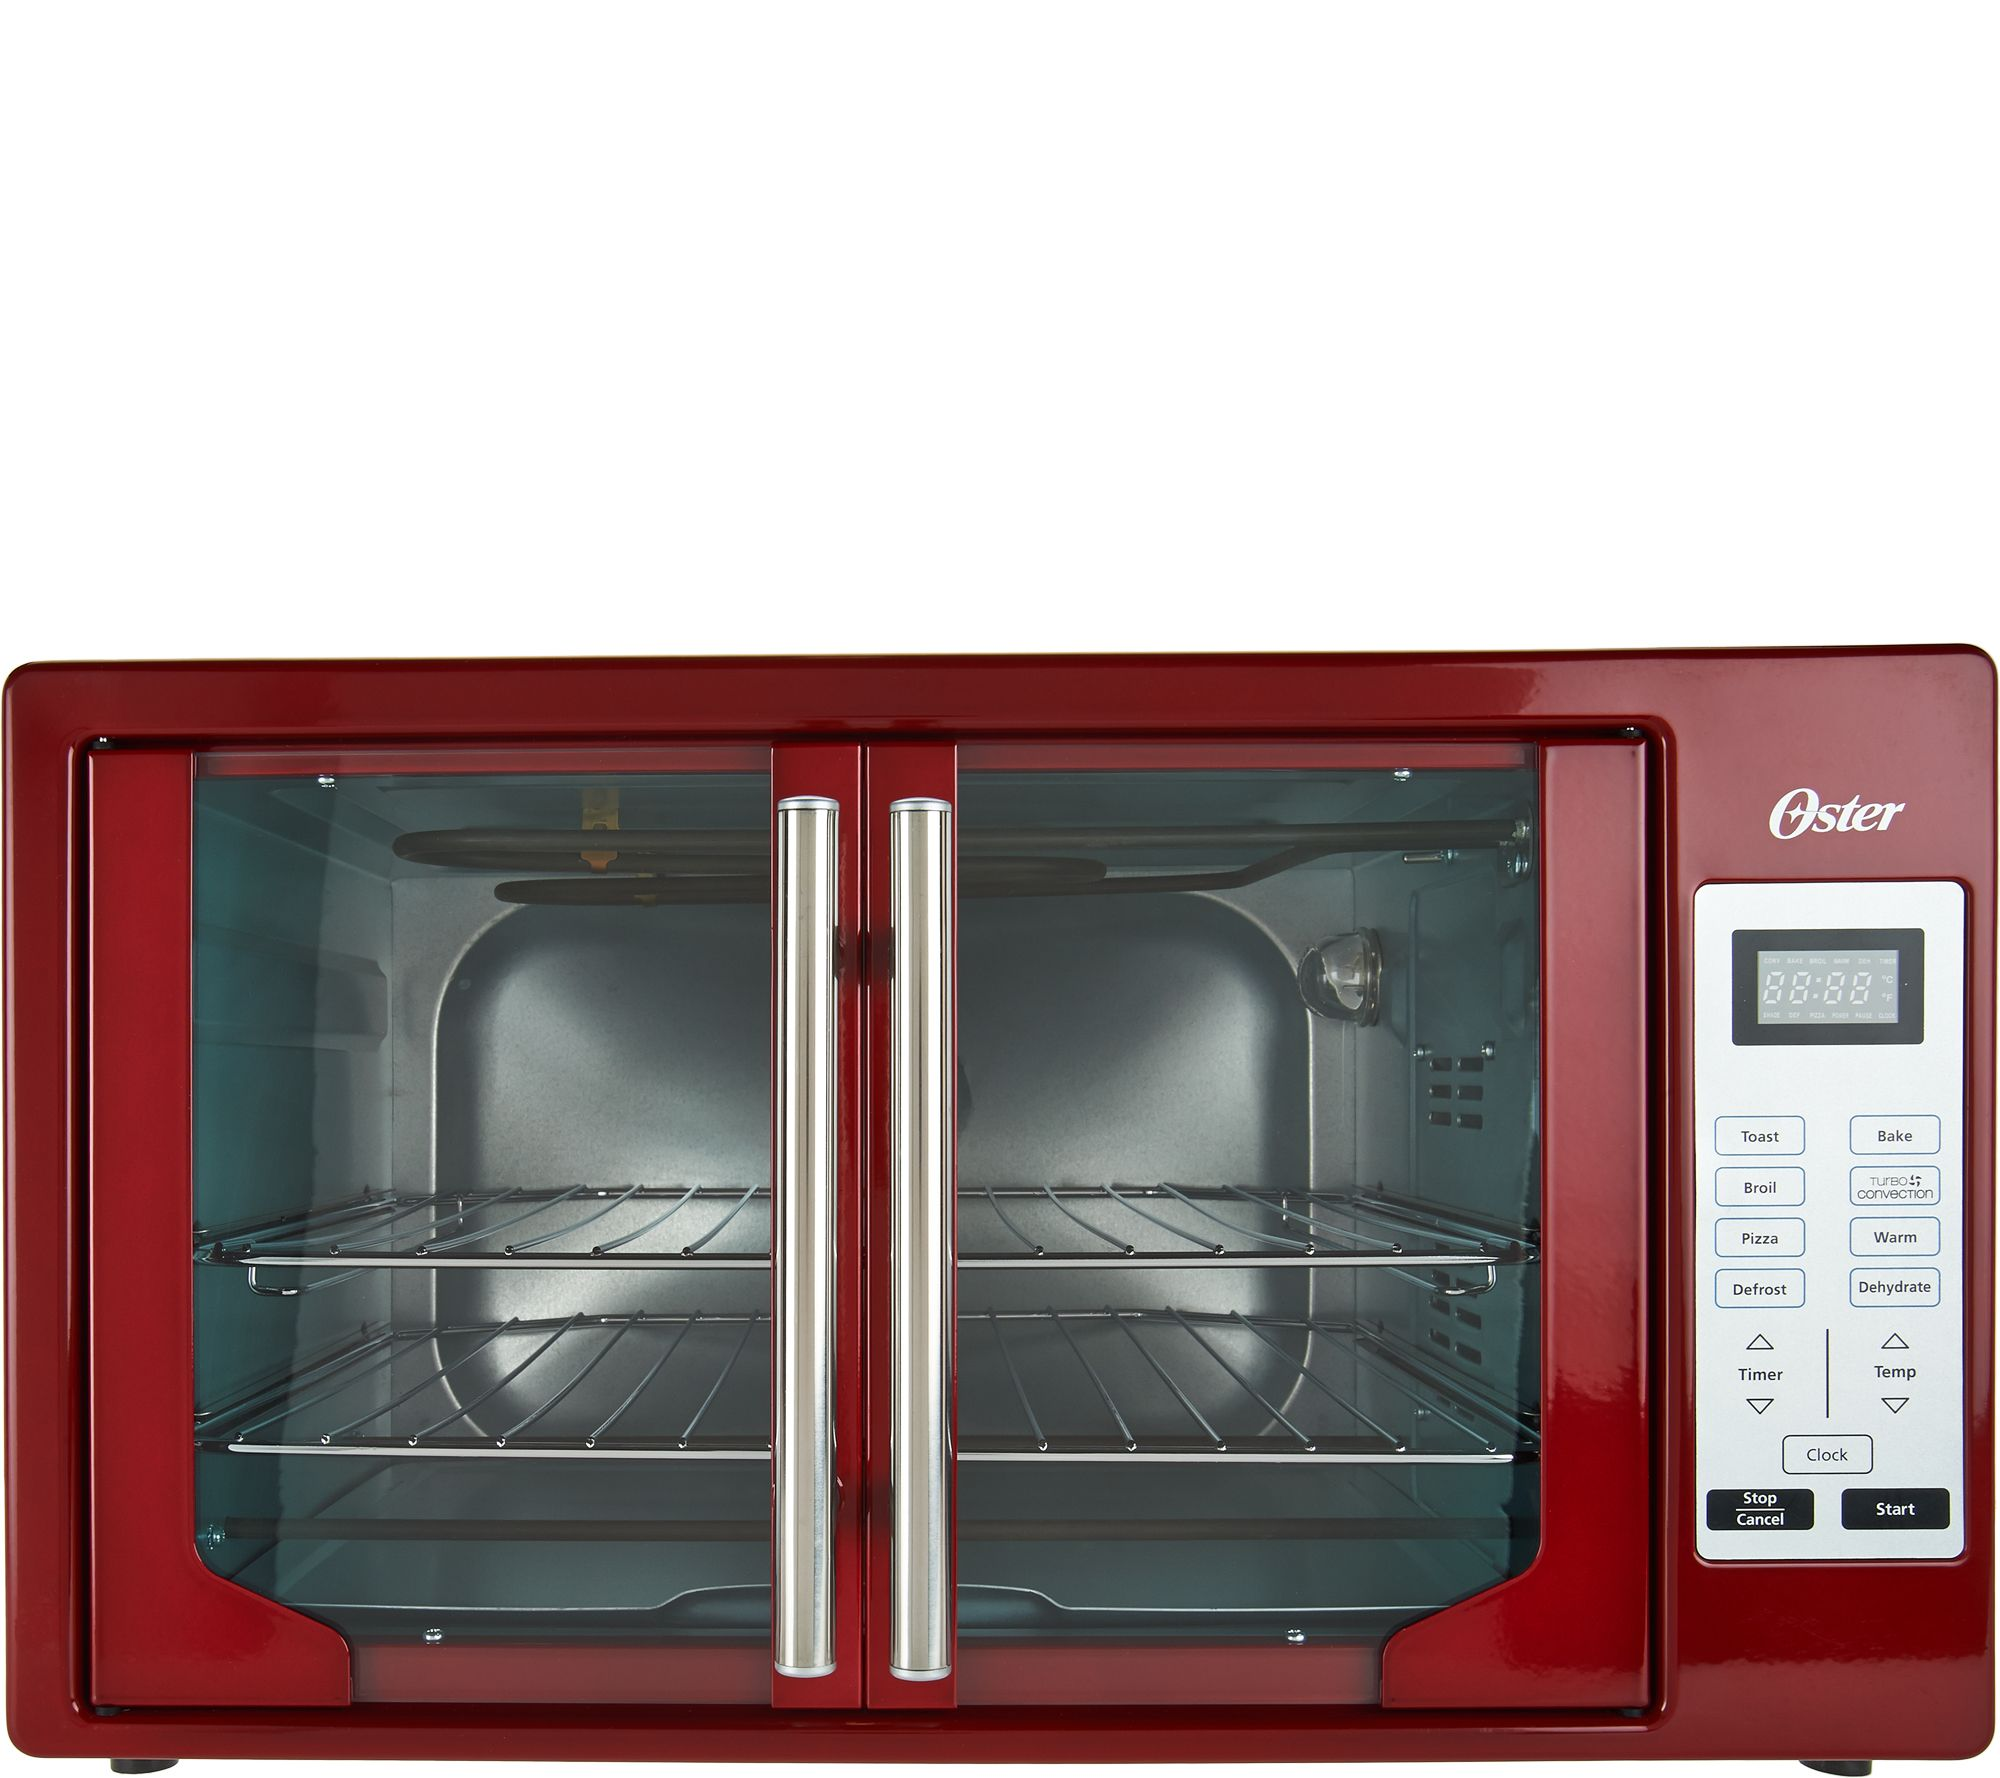 Oster Convection Countertop Oven Reviews Oster Xl Digital Convection Oven With French Doors Qvc